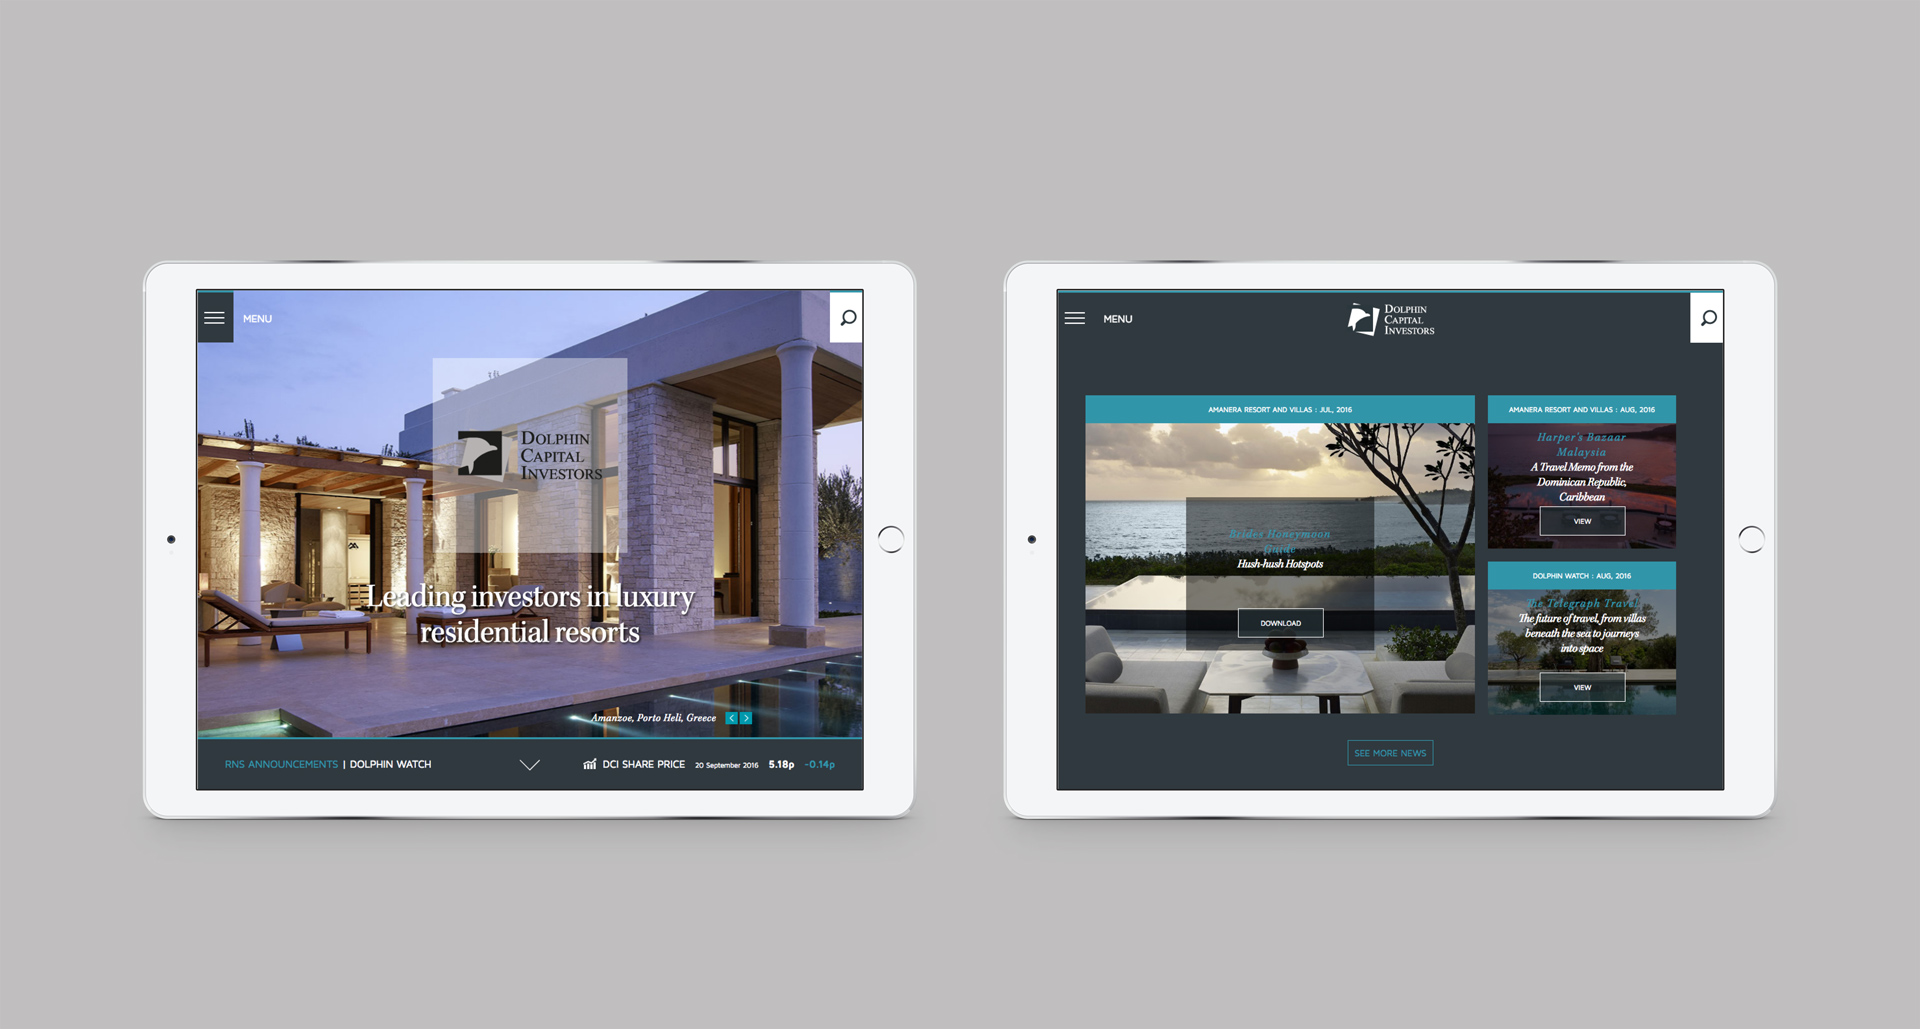 Responsive website viewed on a pair of iPads | Luxury resort marketing | Dolphin Capital Investors